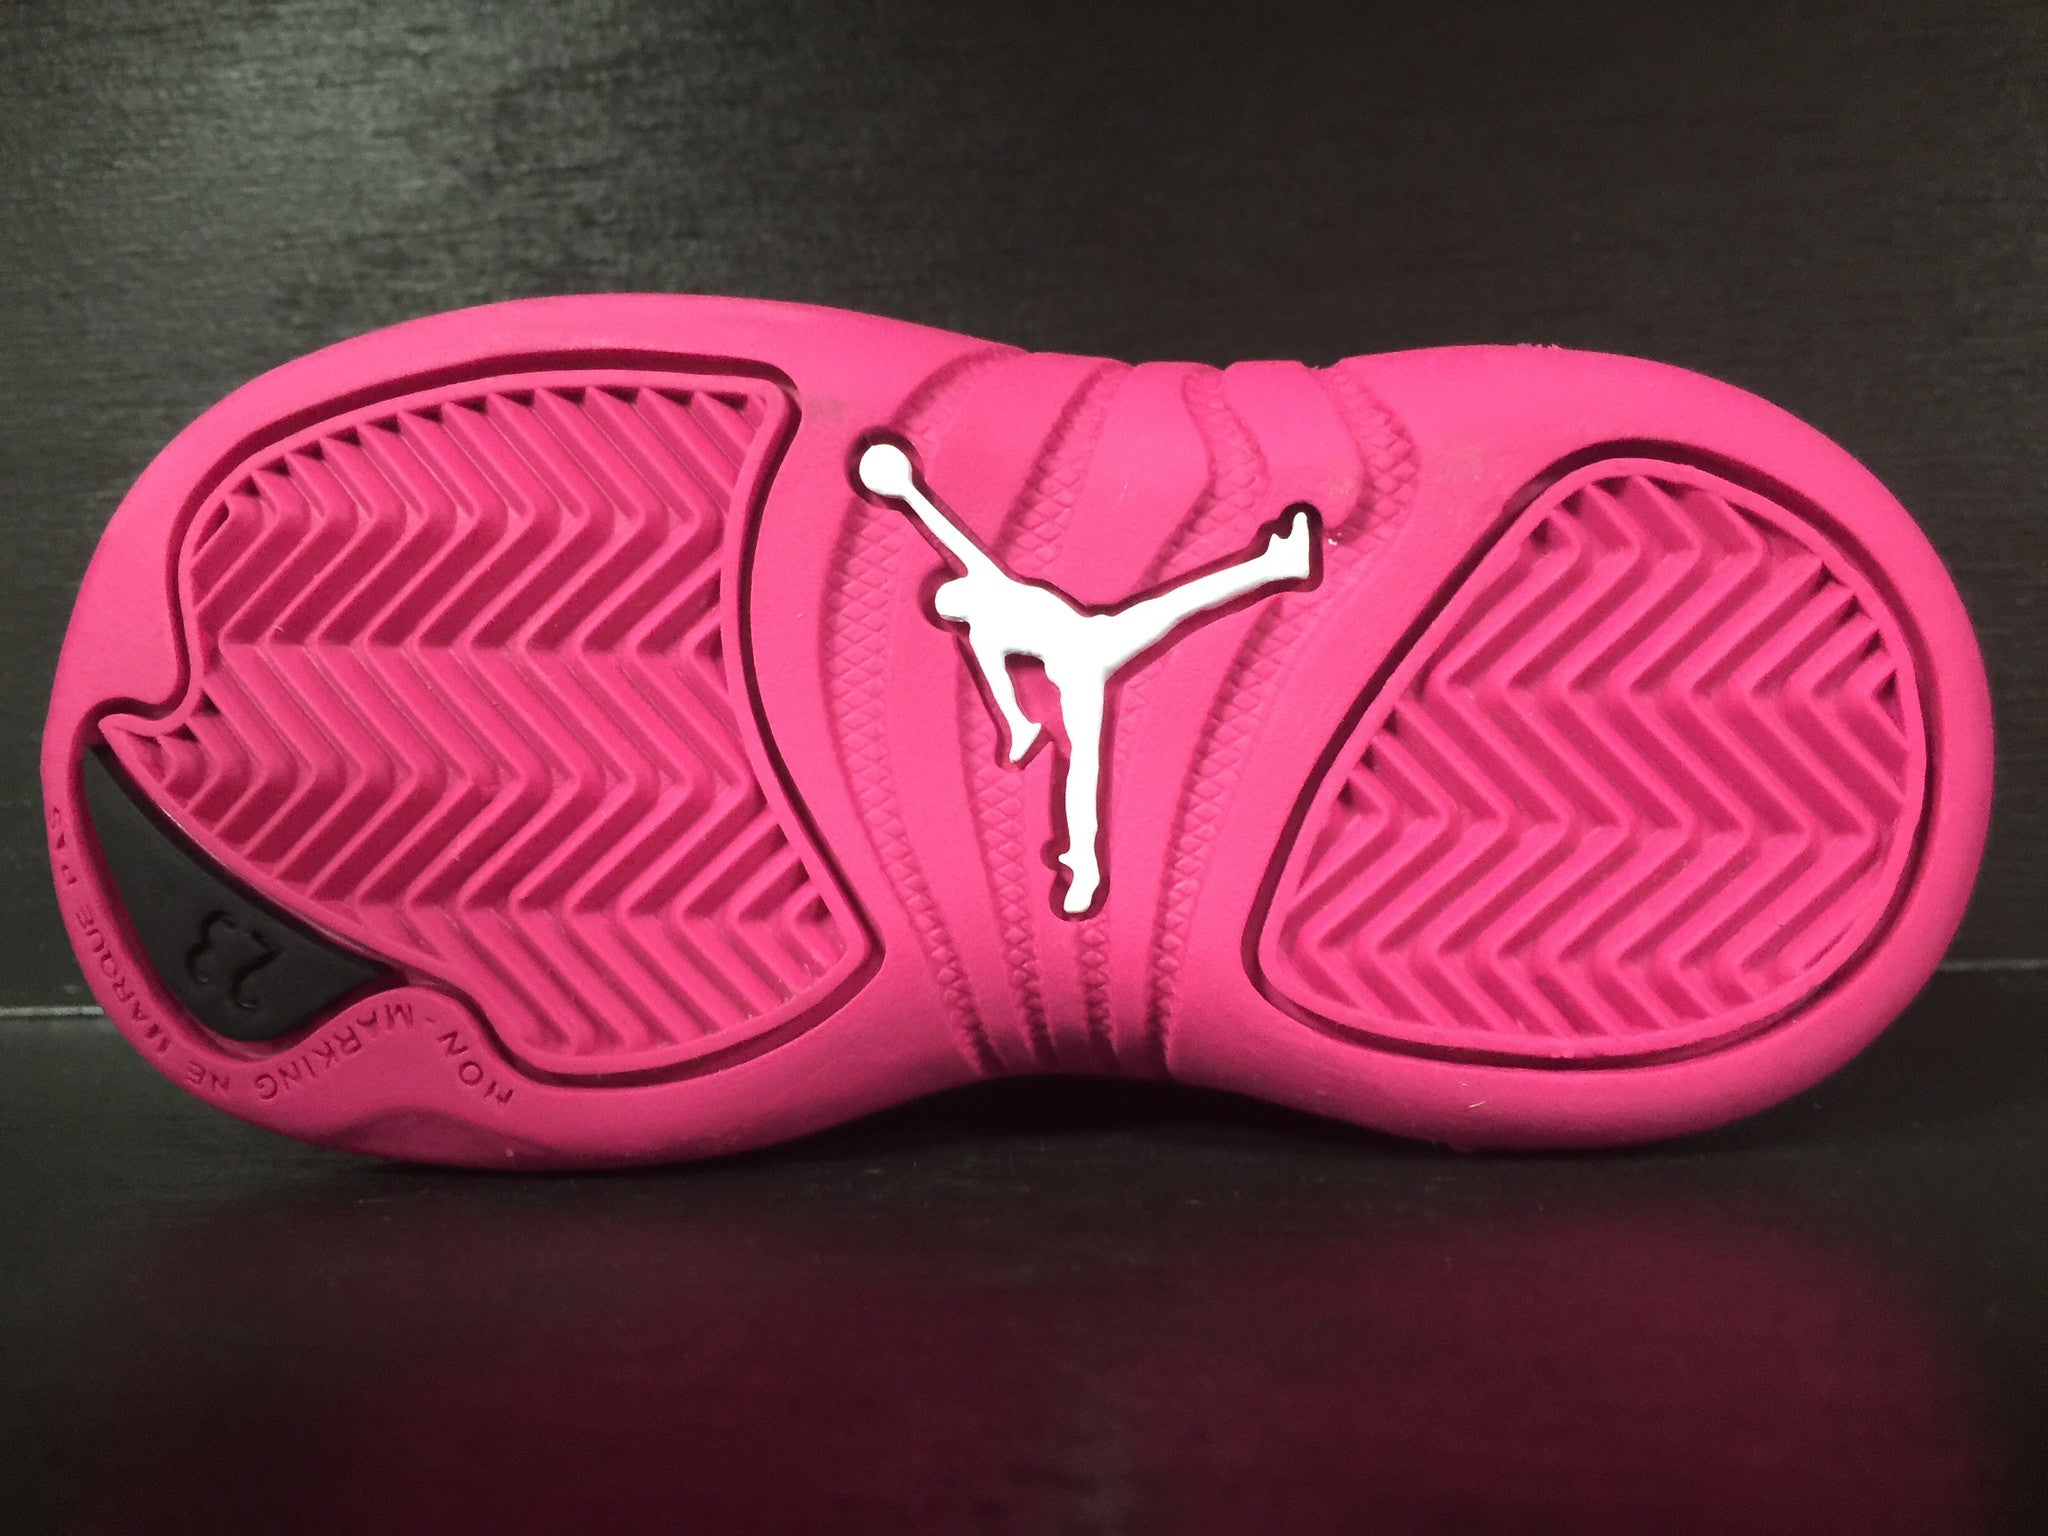 Jordan 12 Retro GT 'Dynamic Pink' Toddler